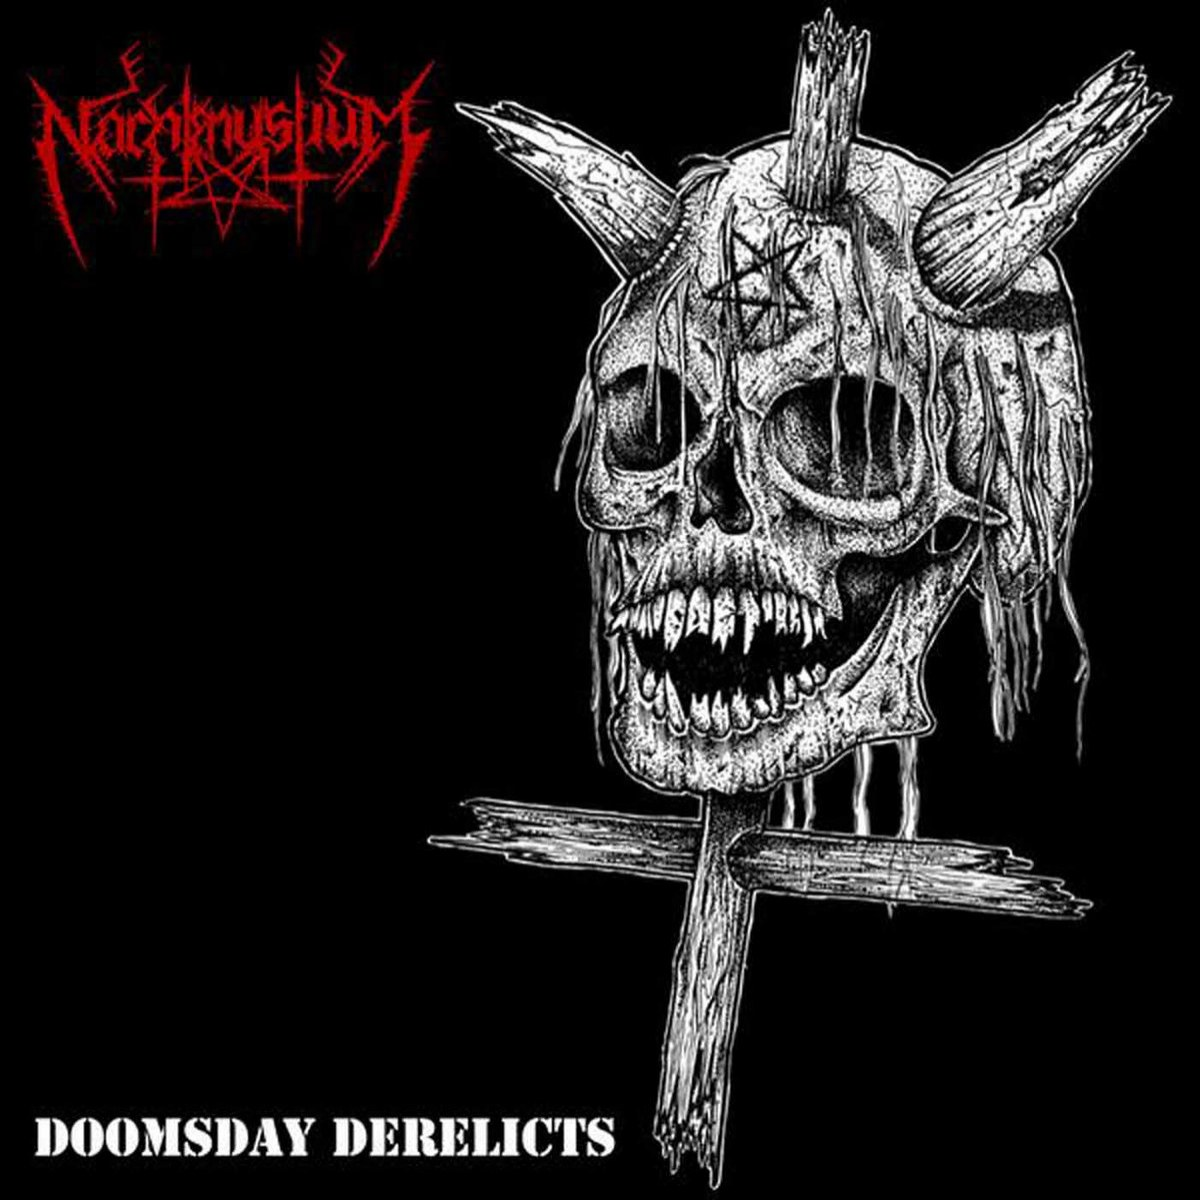 Review for Nachtmystium - Doomsday Derelicts